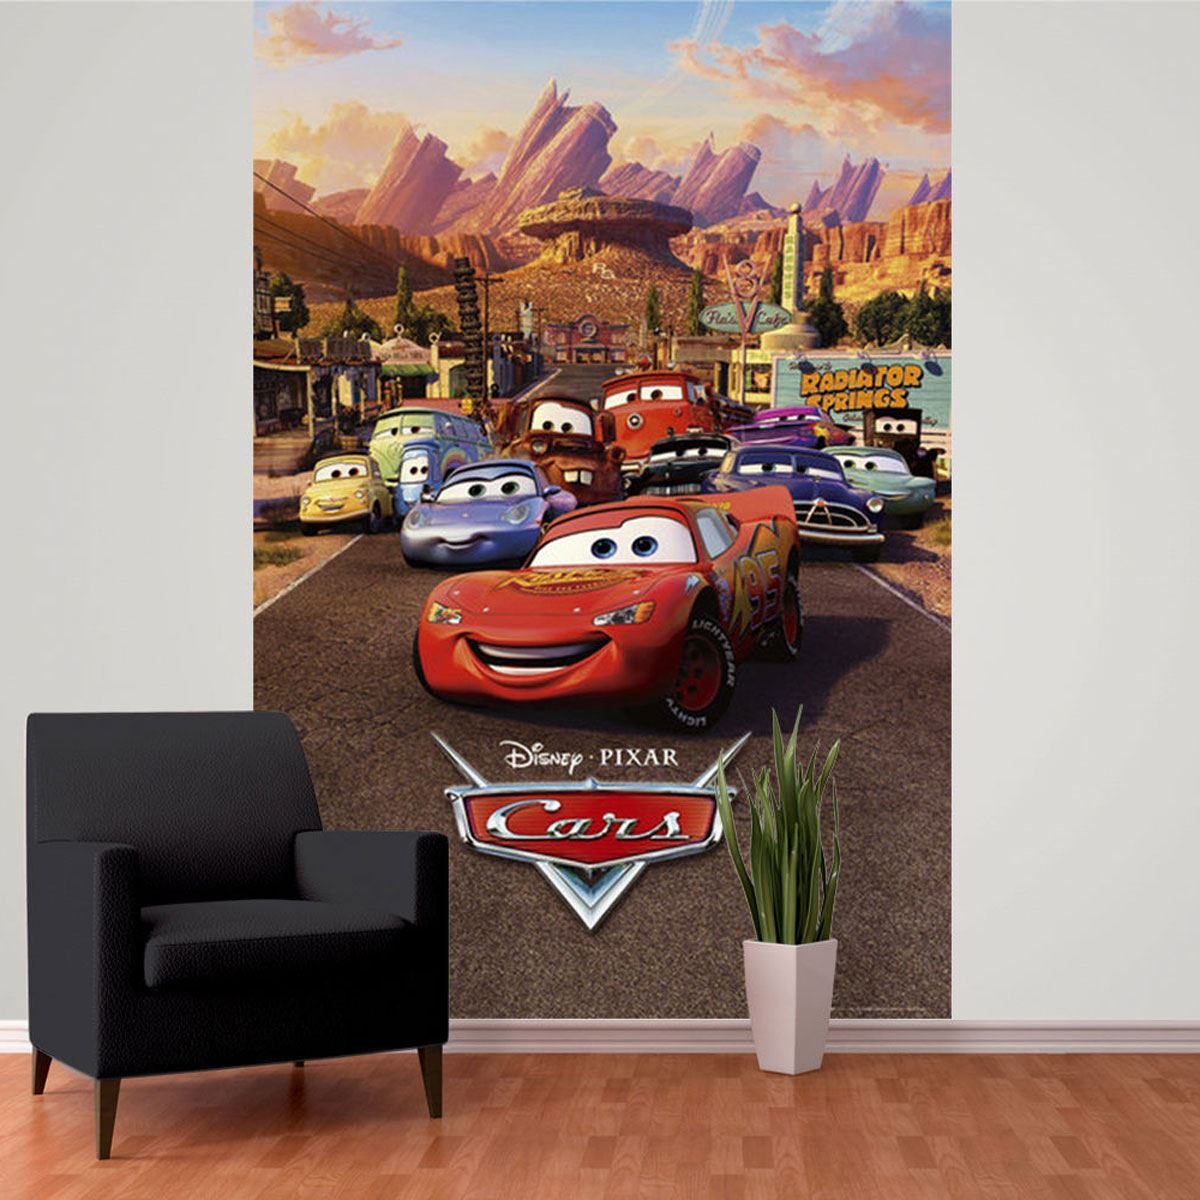 Disney Cars Wall Murals 6 Designs Available Kids Bedroom 100